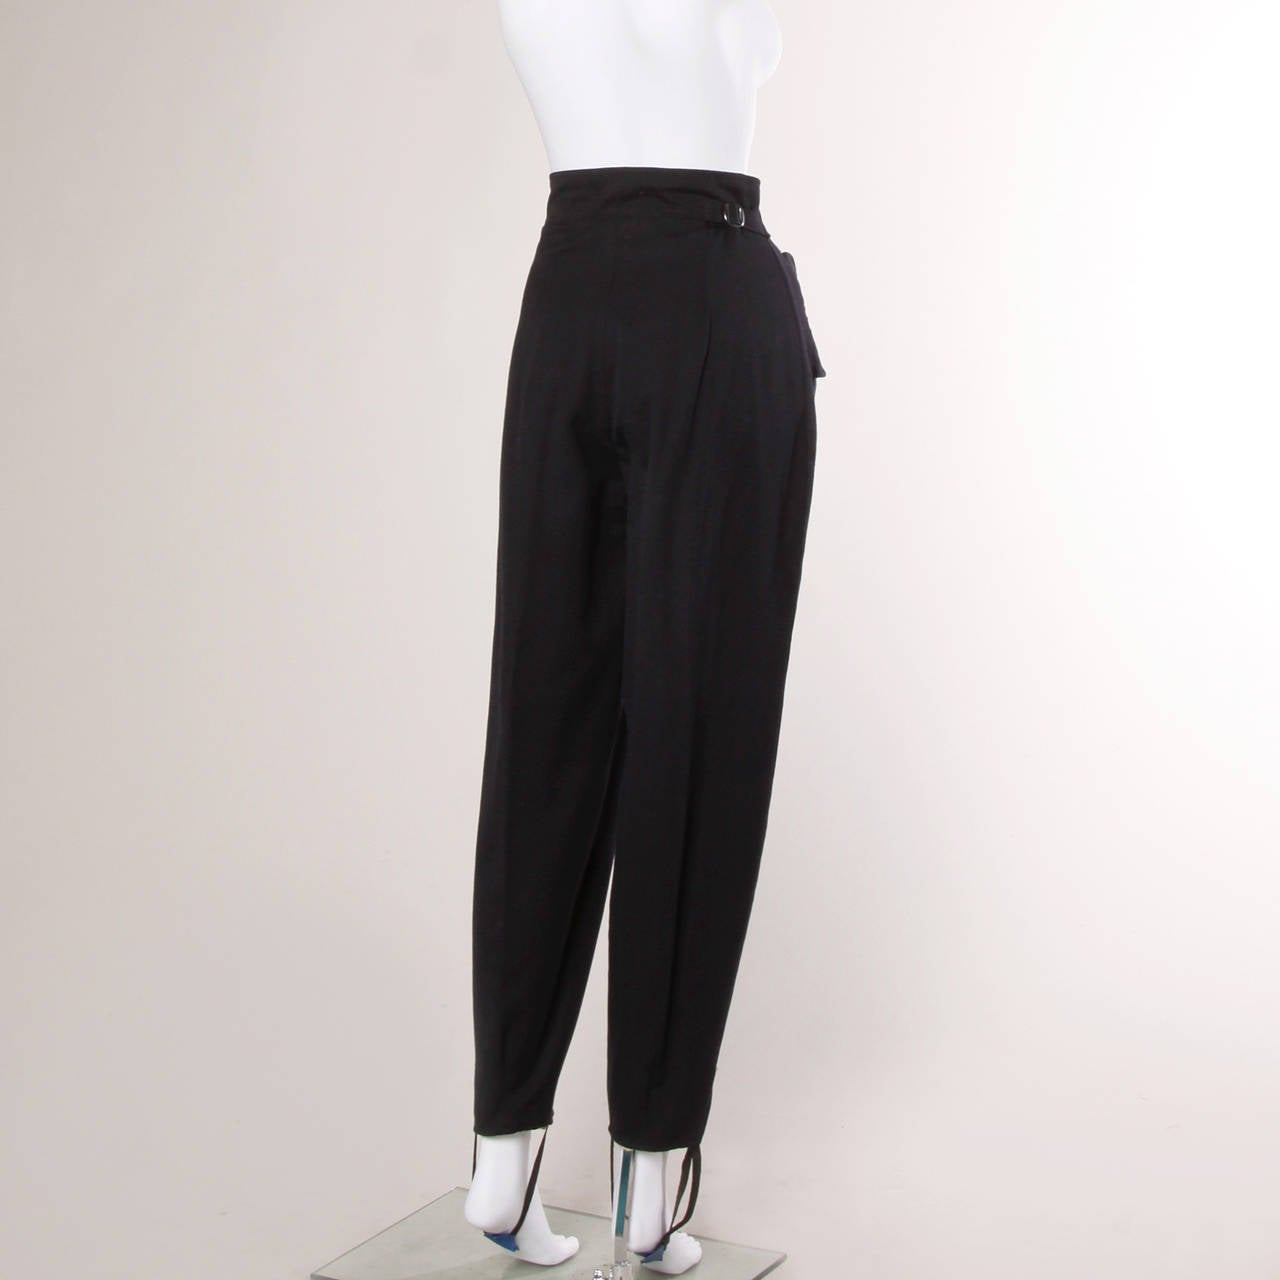 1940s Vintage Navy Blue Wool High Waisted Riding Pants with Stirrups 5